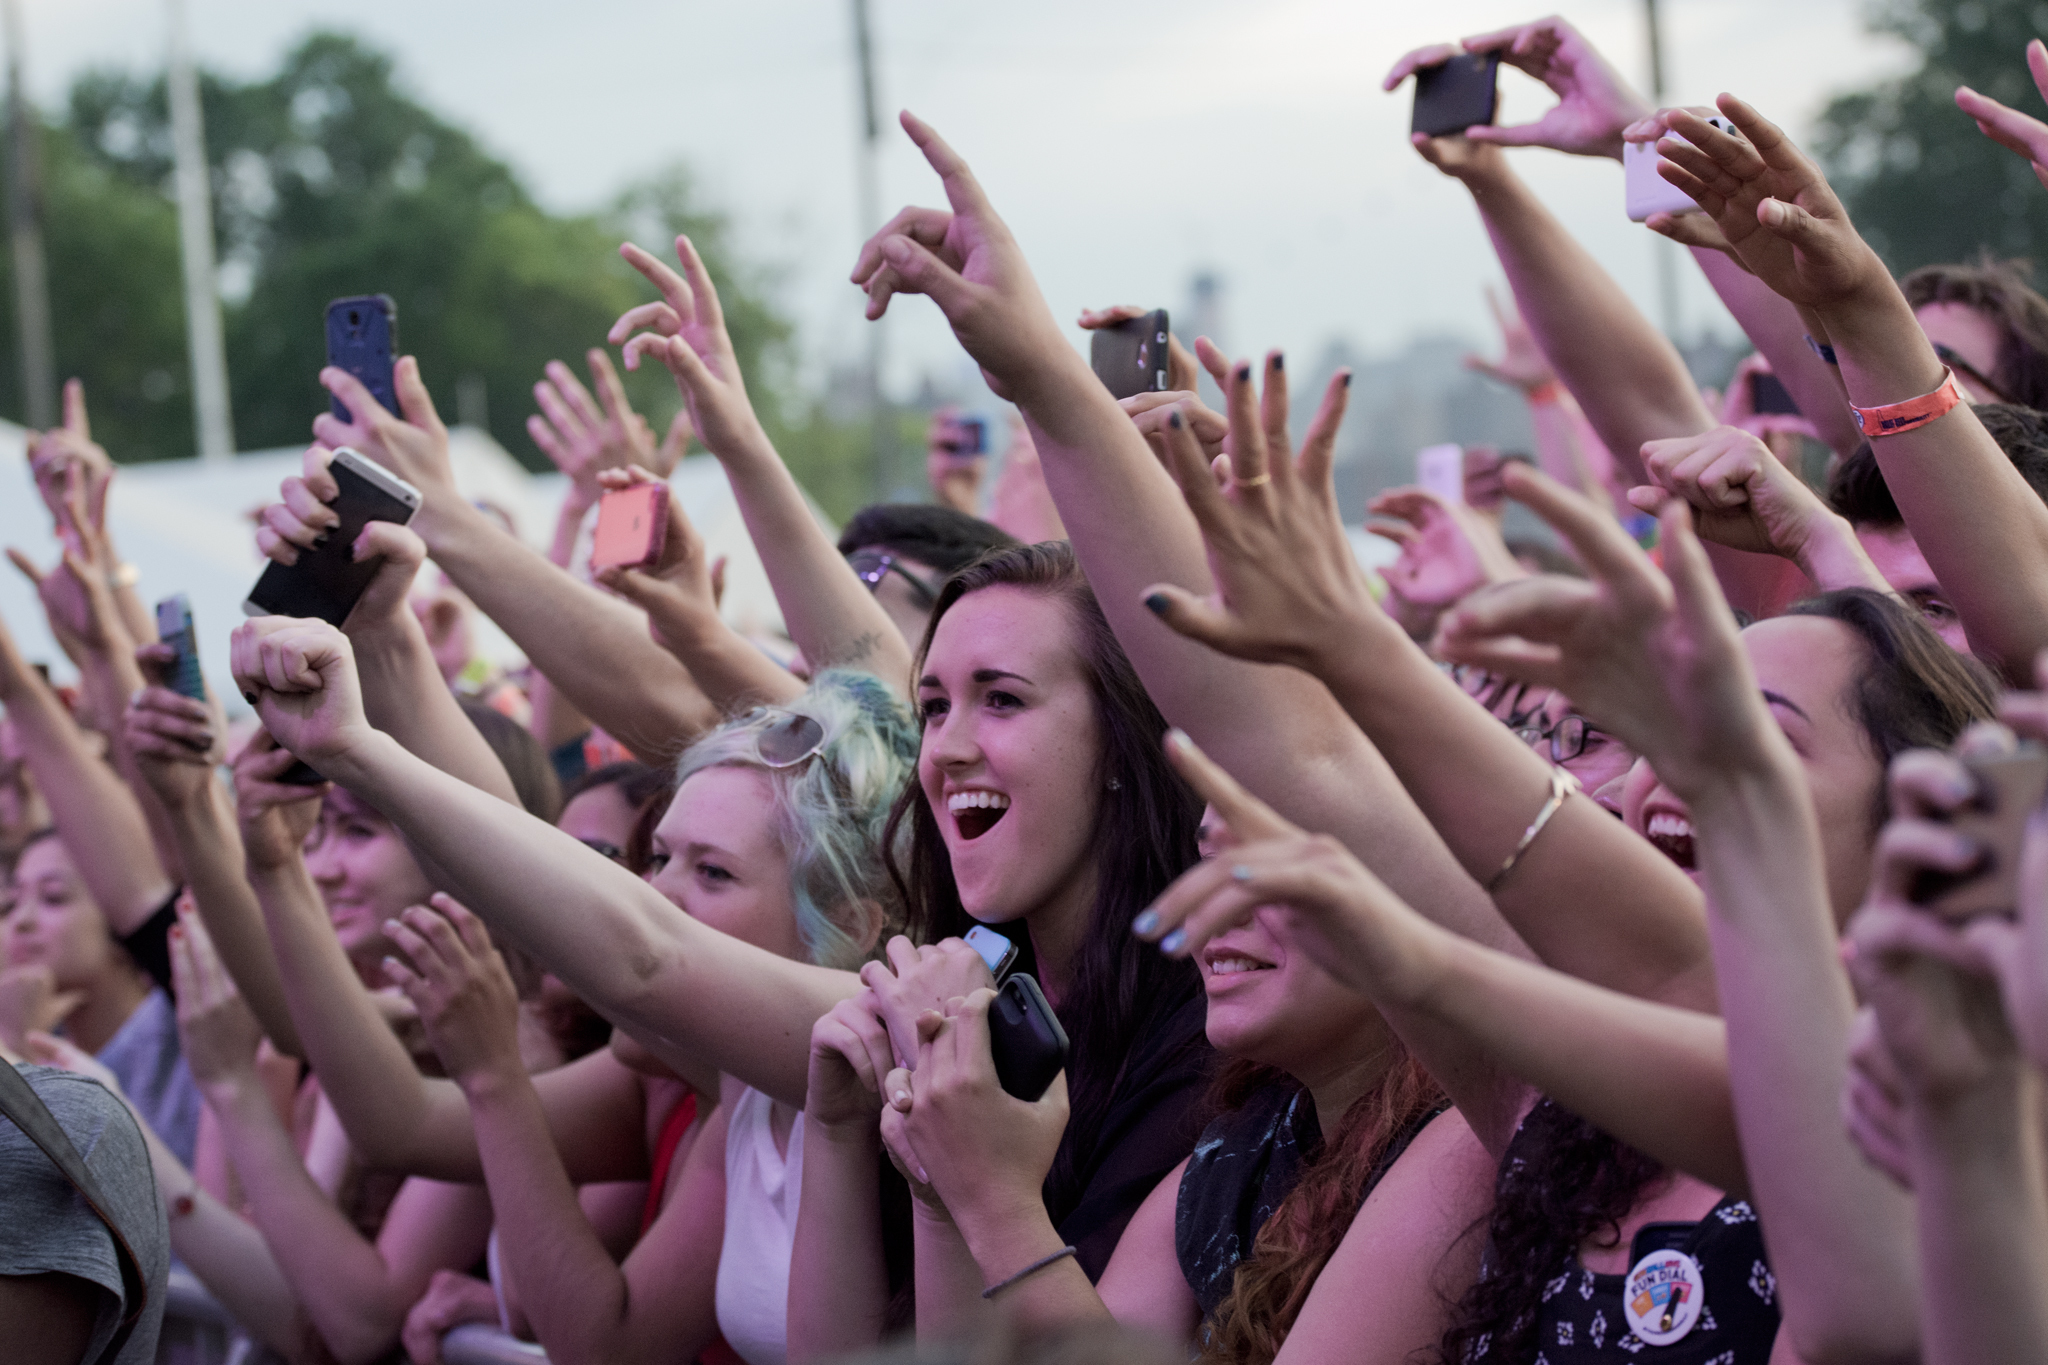 The Governors Ball schedule is out and it's full of conflicts